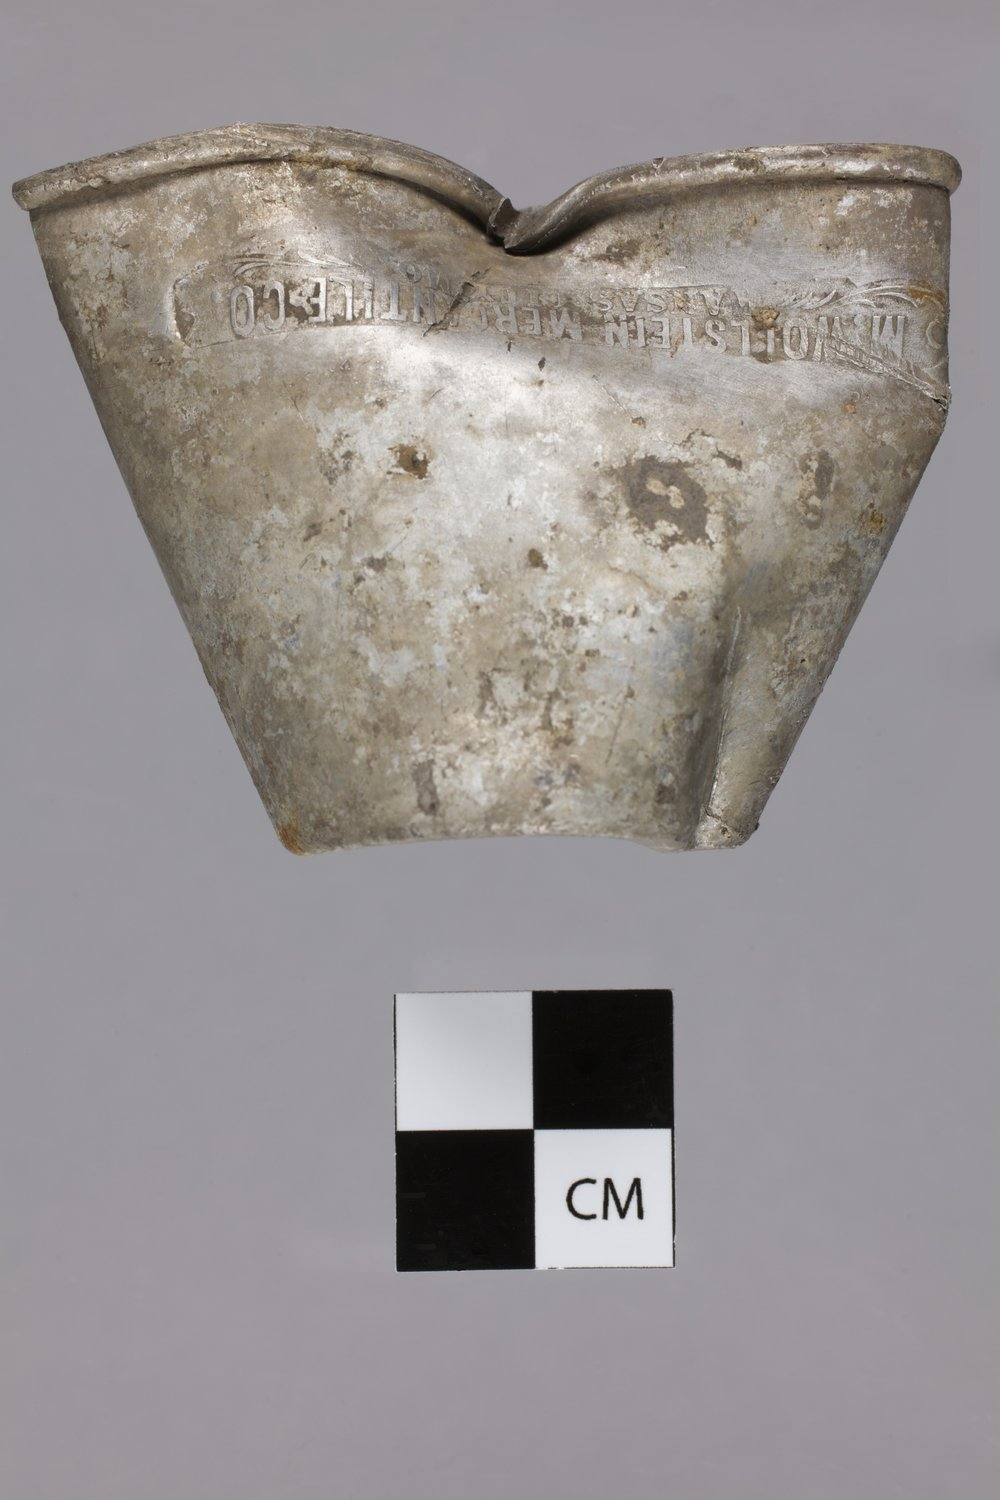 Shot Glass from the Kaw Mission, 14MO368 - 1